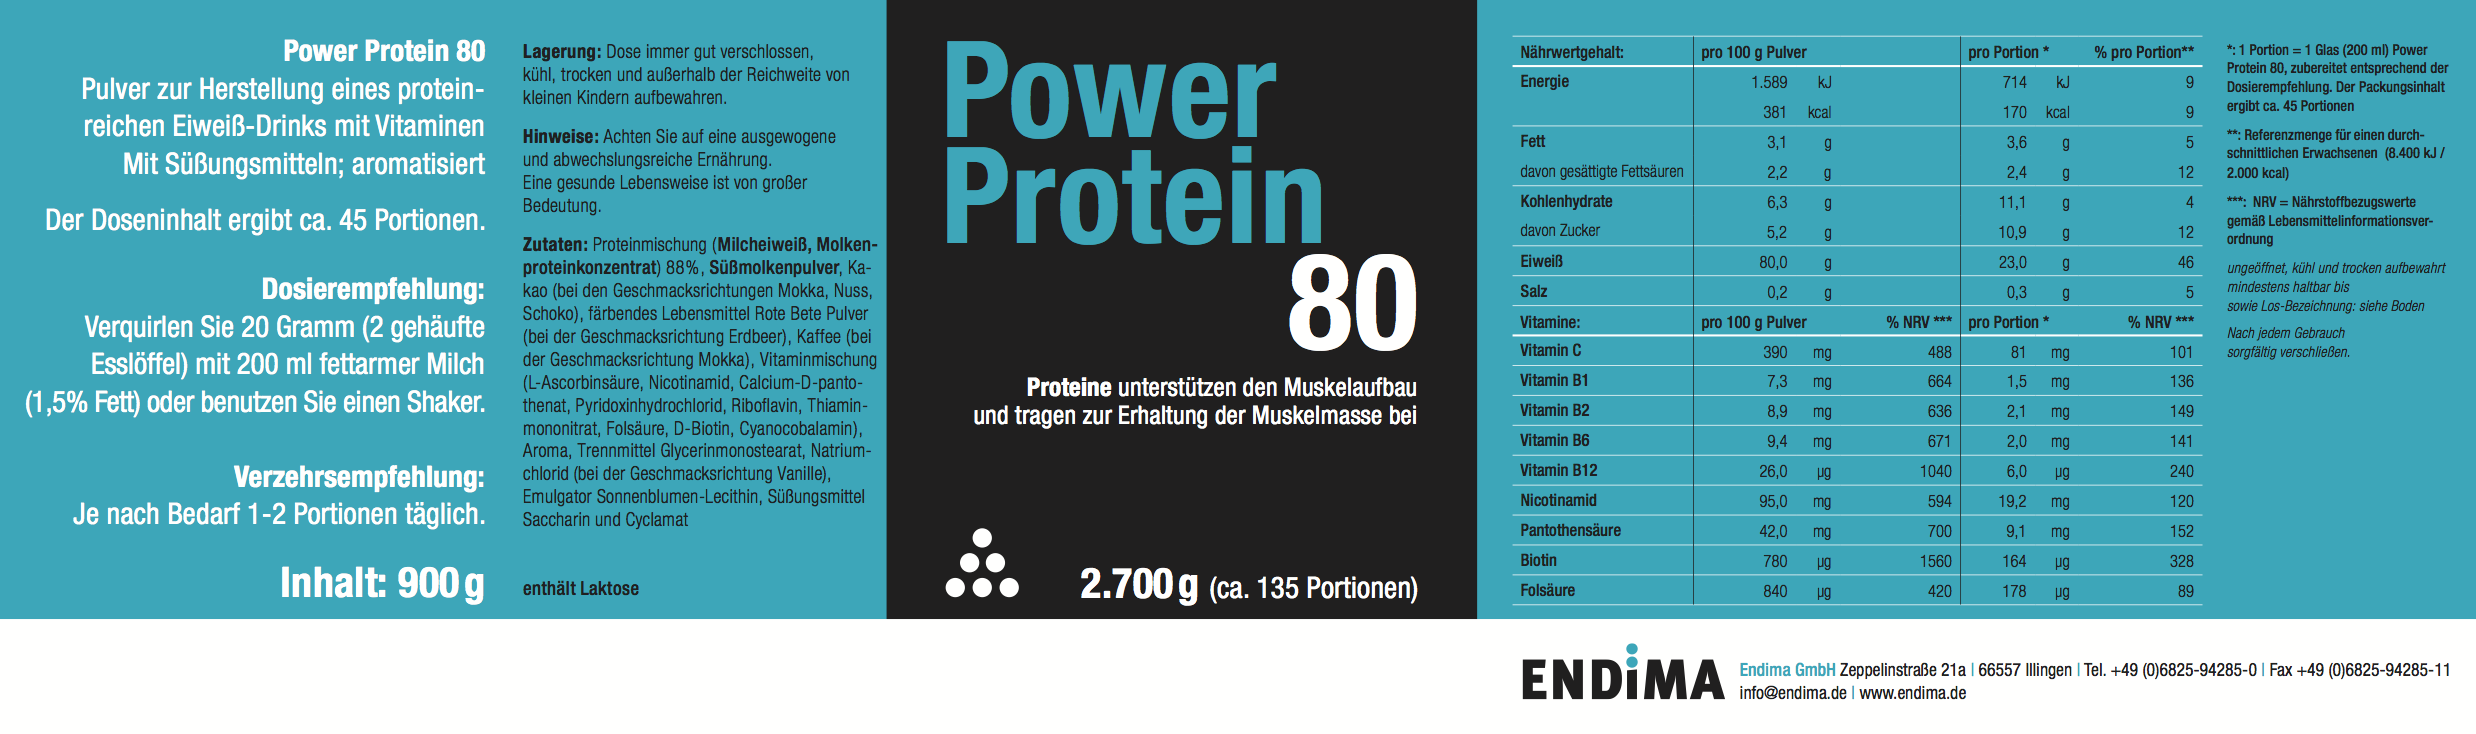 Power_Protein_80_2700g_Etikett